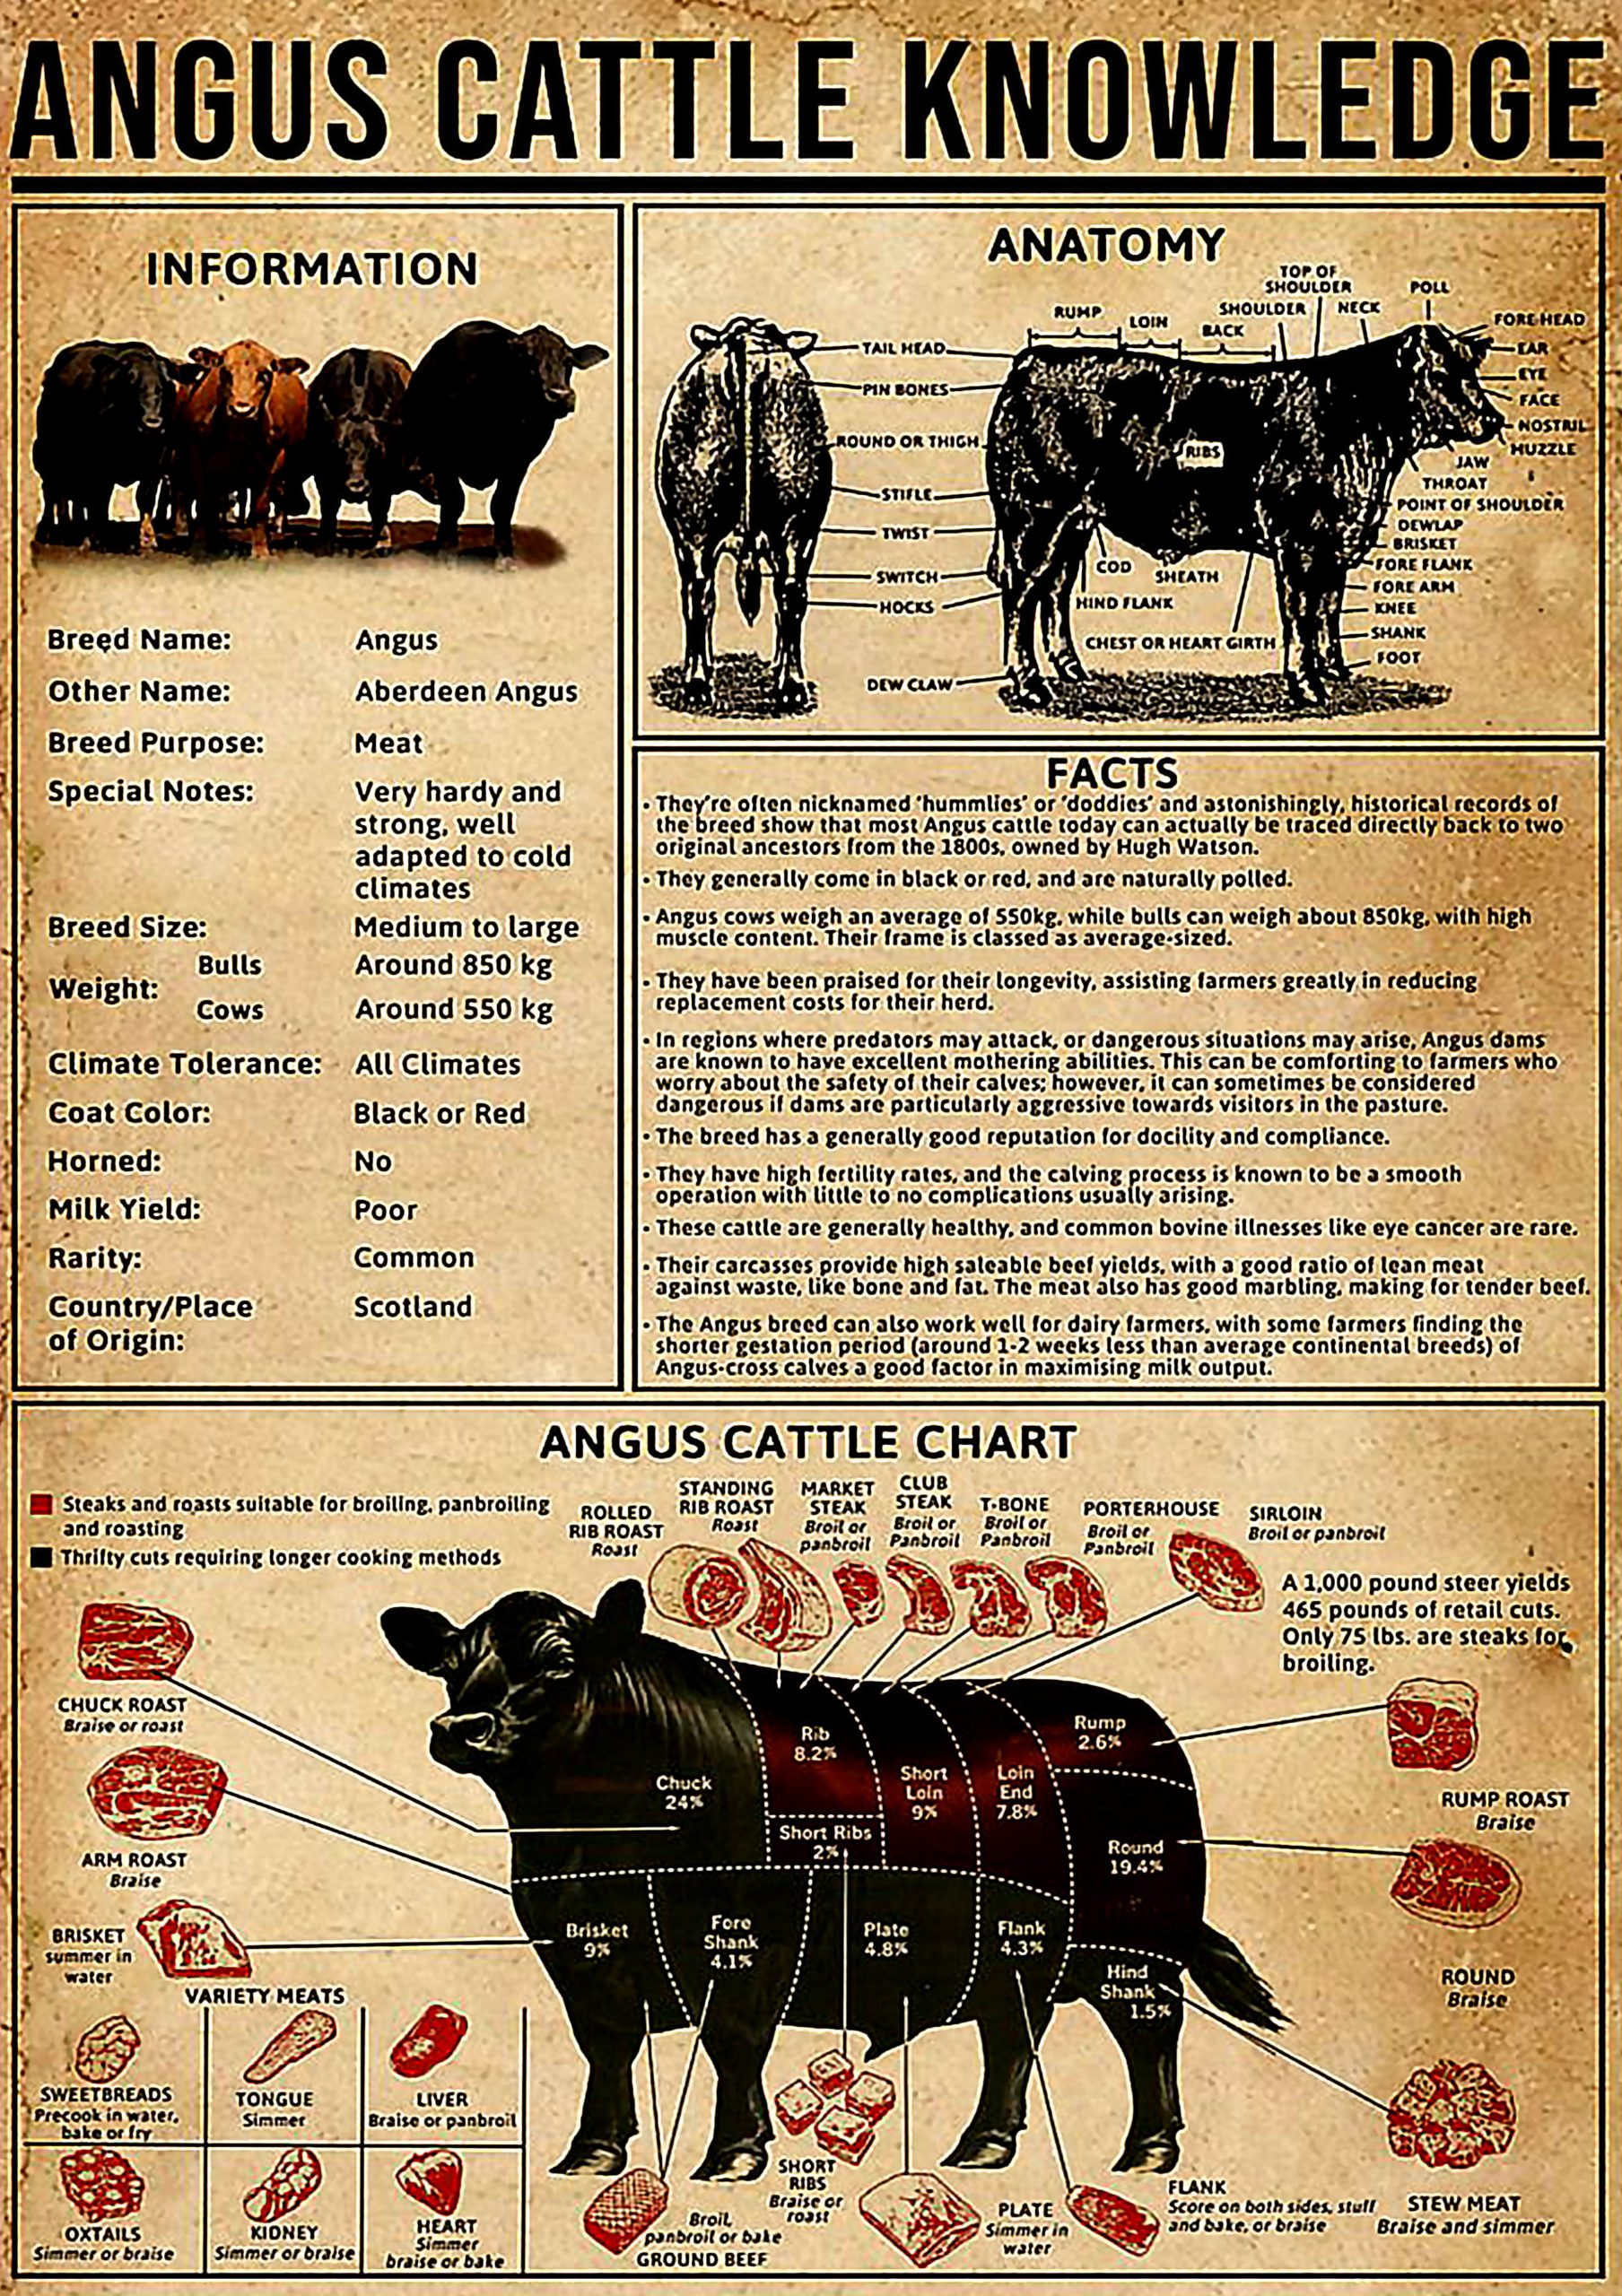 vintage angus cattle knowledge poster 1 - Copy (2)